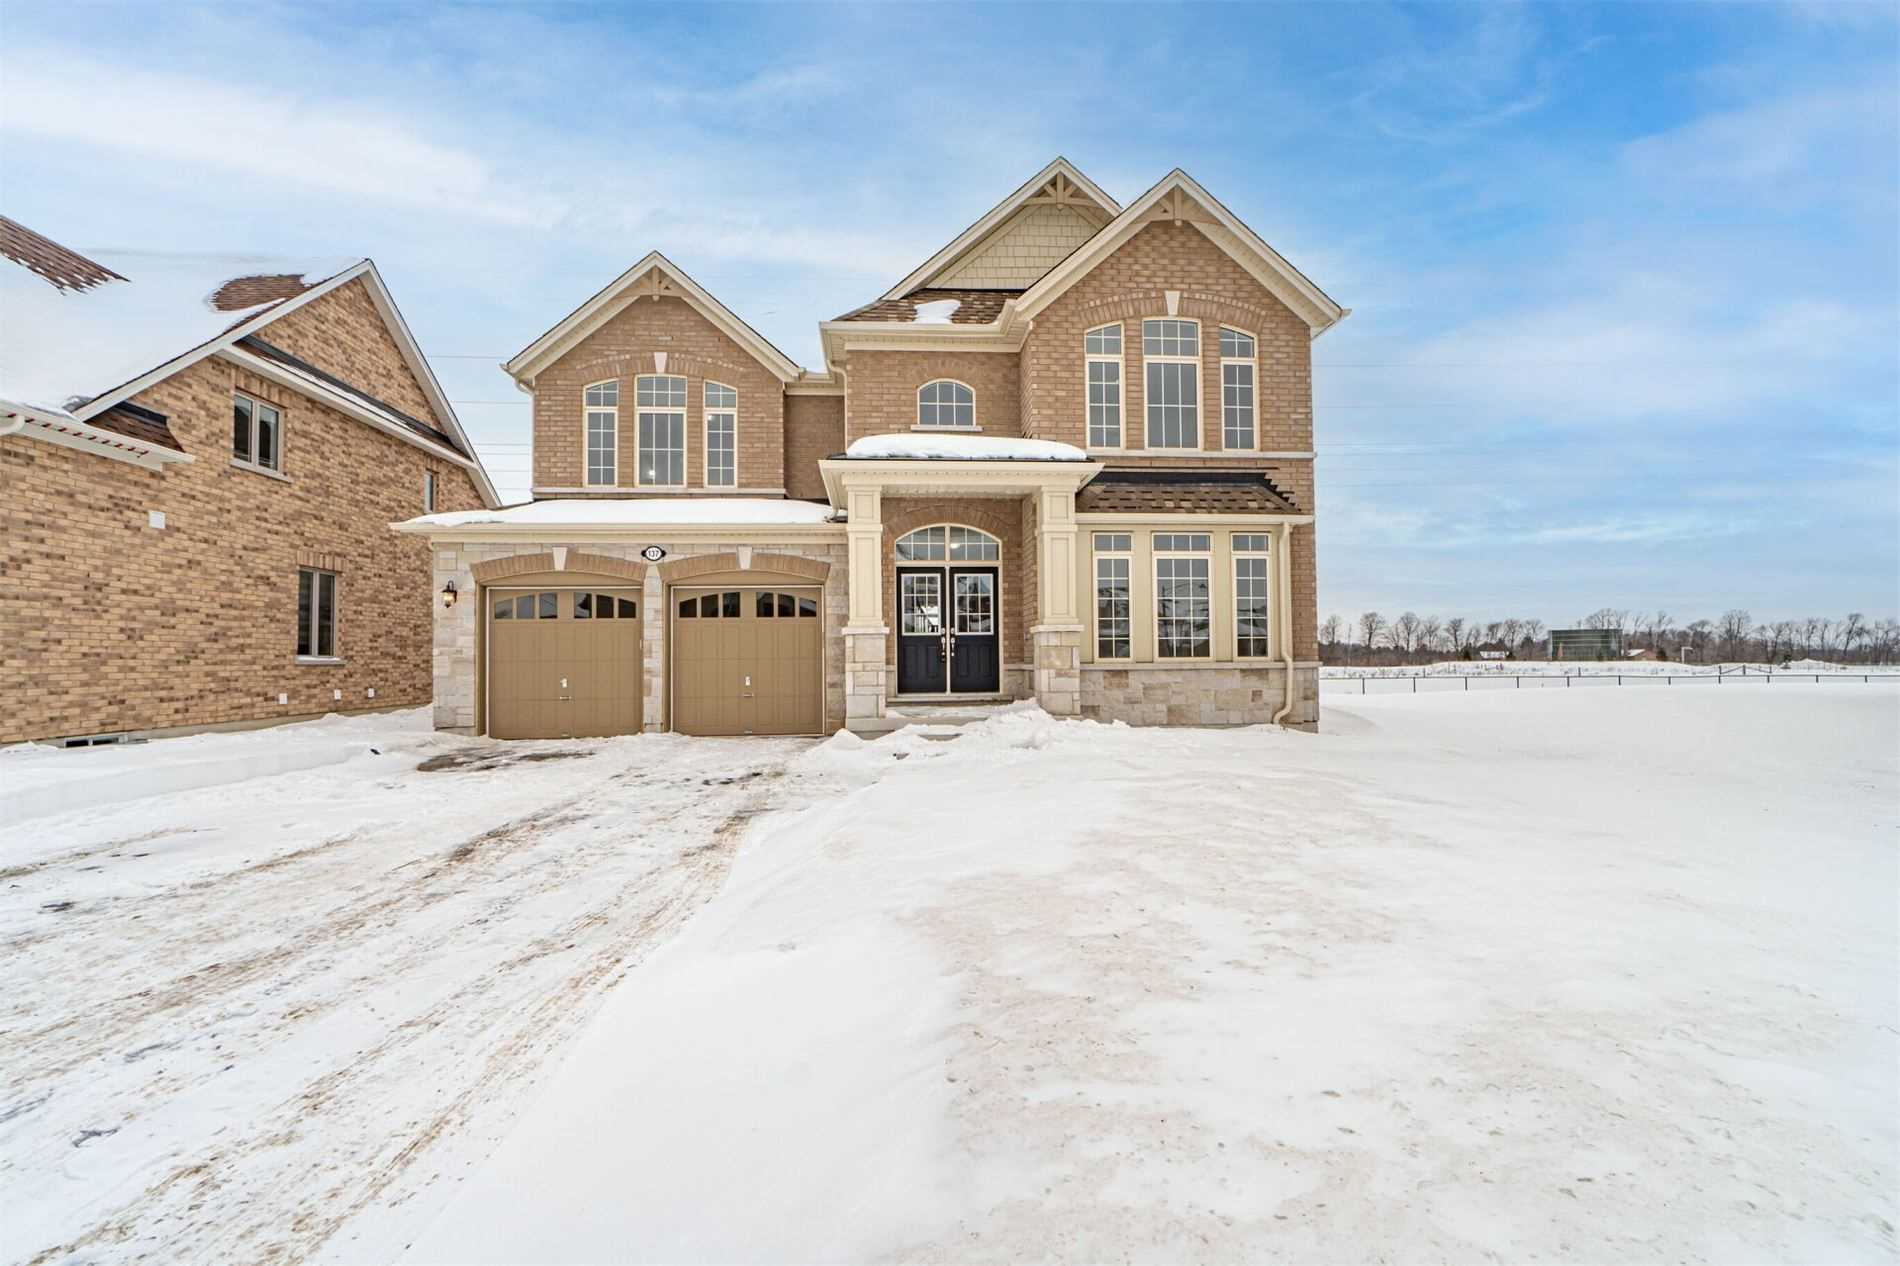 pictures of house for sale MLS: S5114445 located at 137 Trail Blvd, Springwater L9X0S5